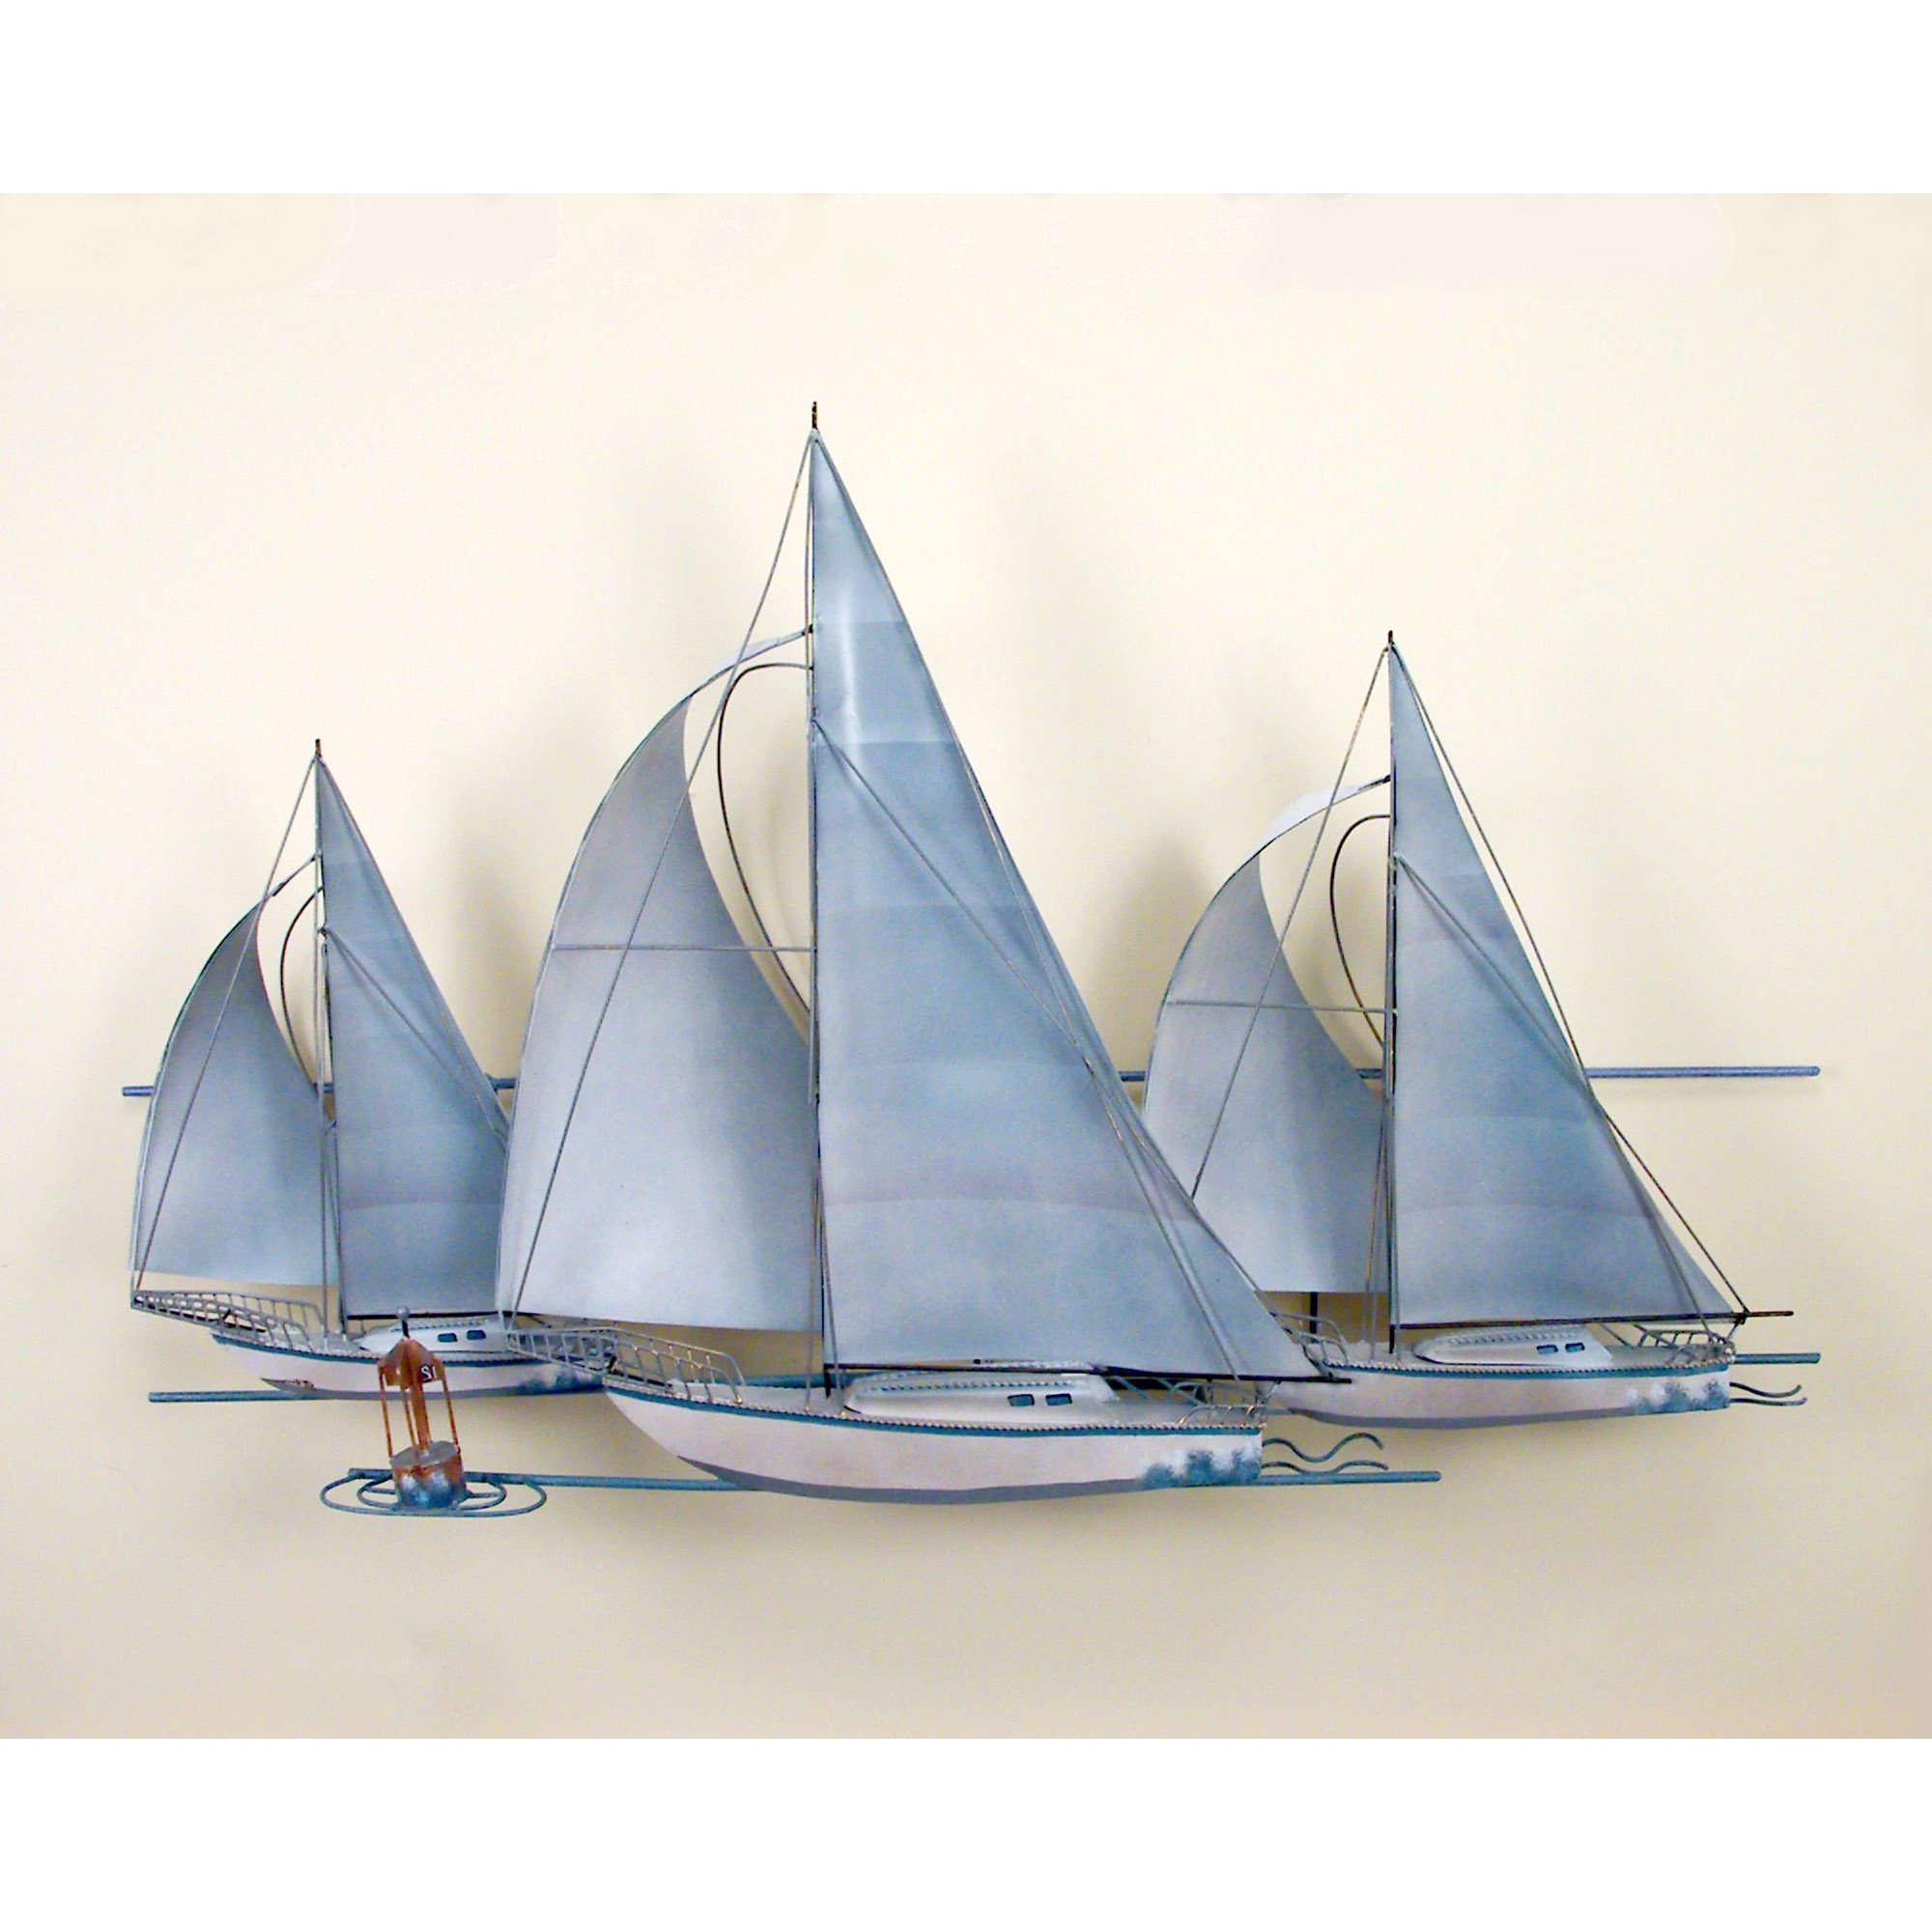 At The Races,three Sail Boats, Race, Wall Art, Wall Hanging Throughout Recent Metal Sailboat Wall Art (View 2 of 15)